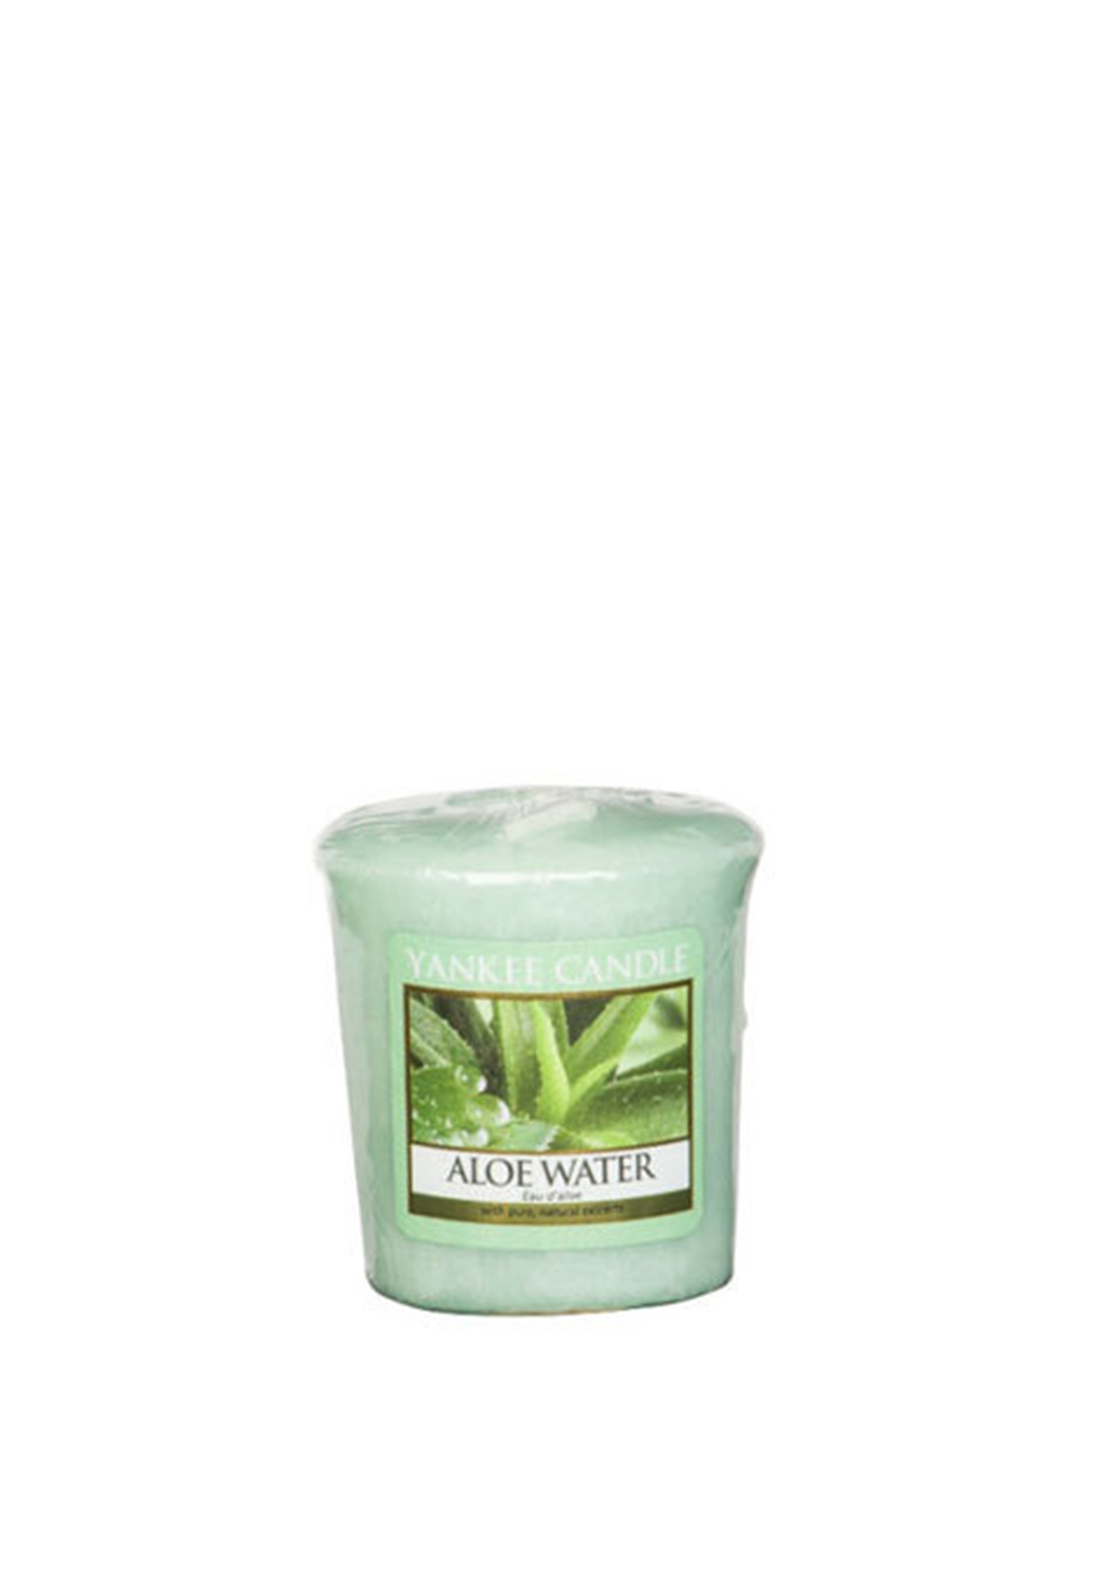 Yankee Candle Aloe Water Votive Candle